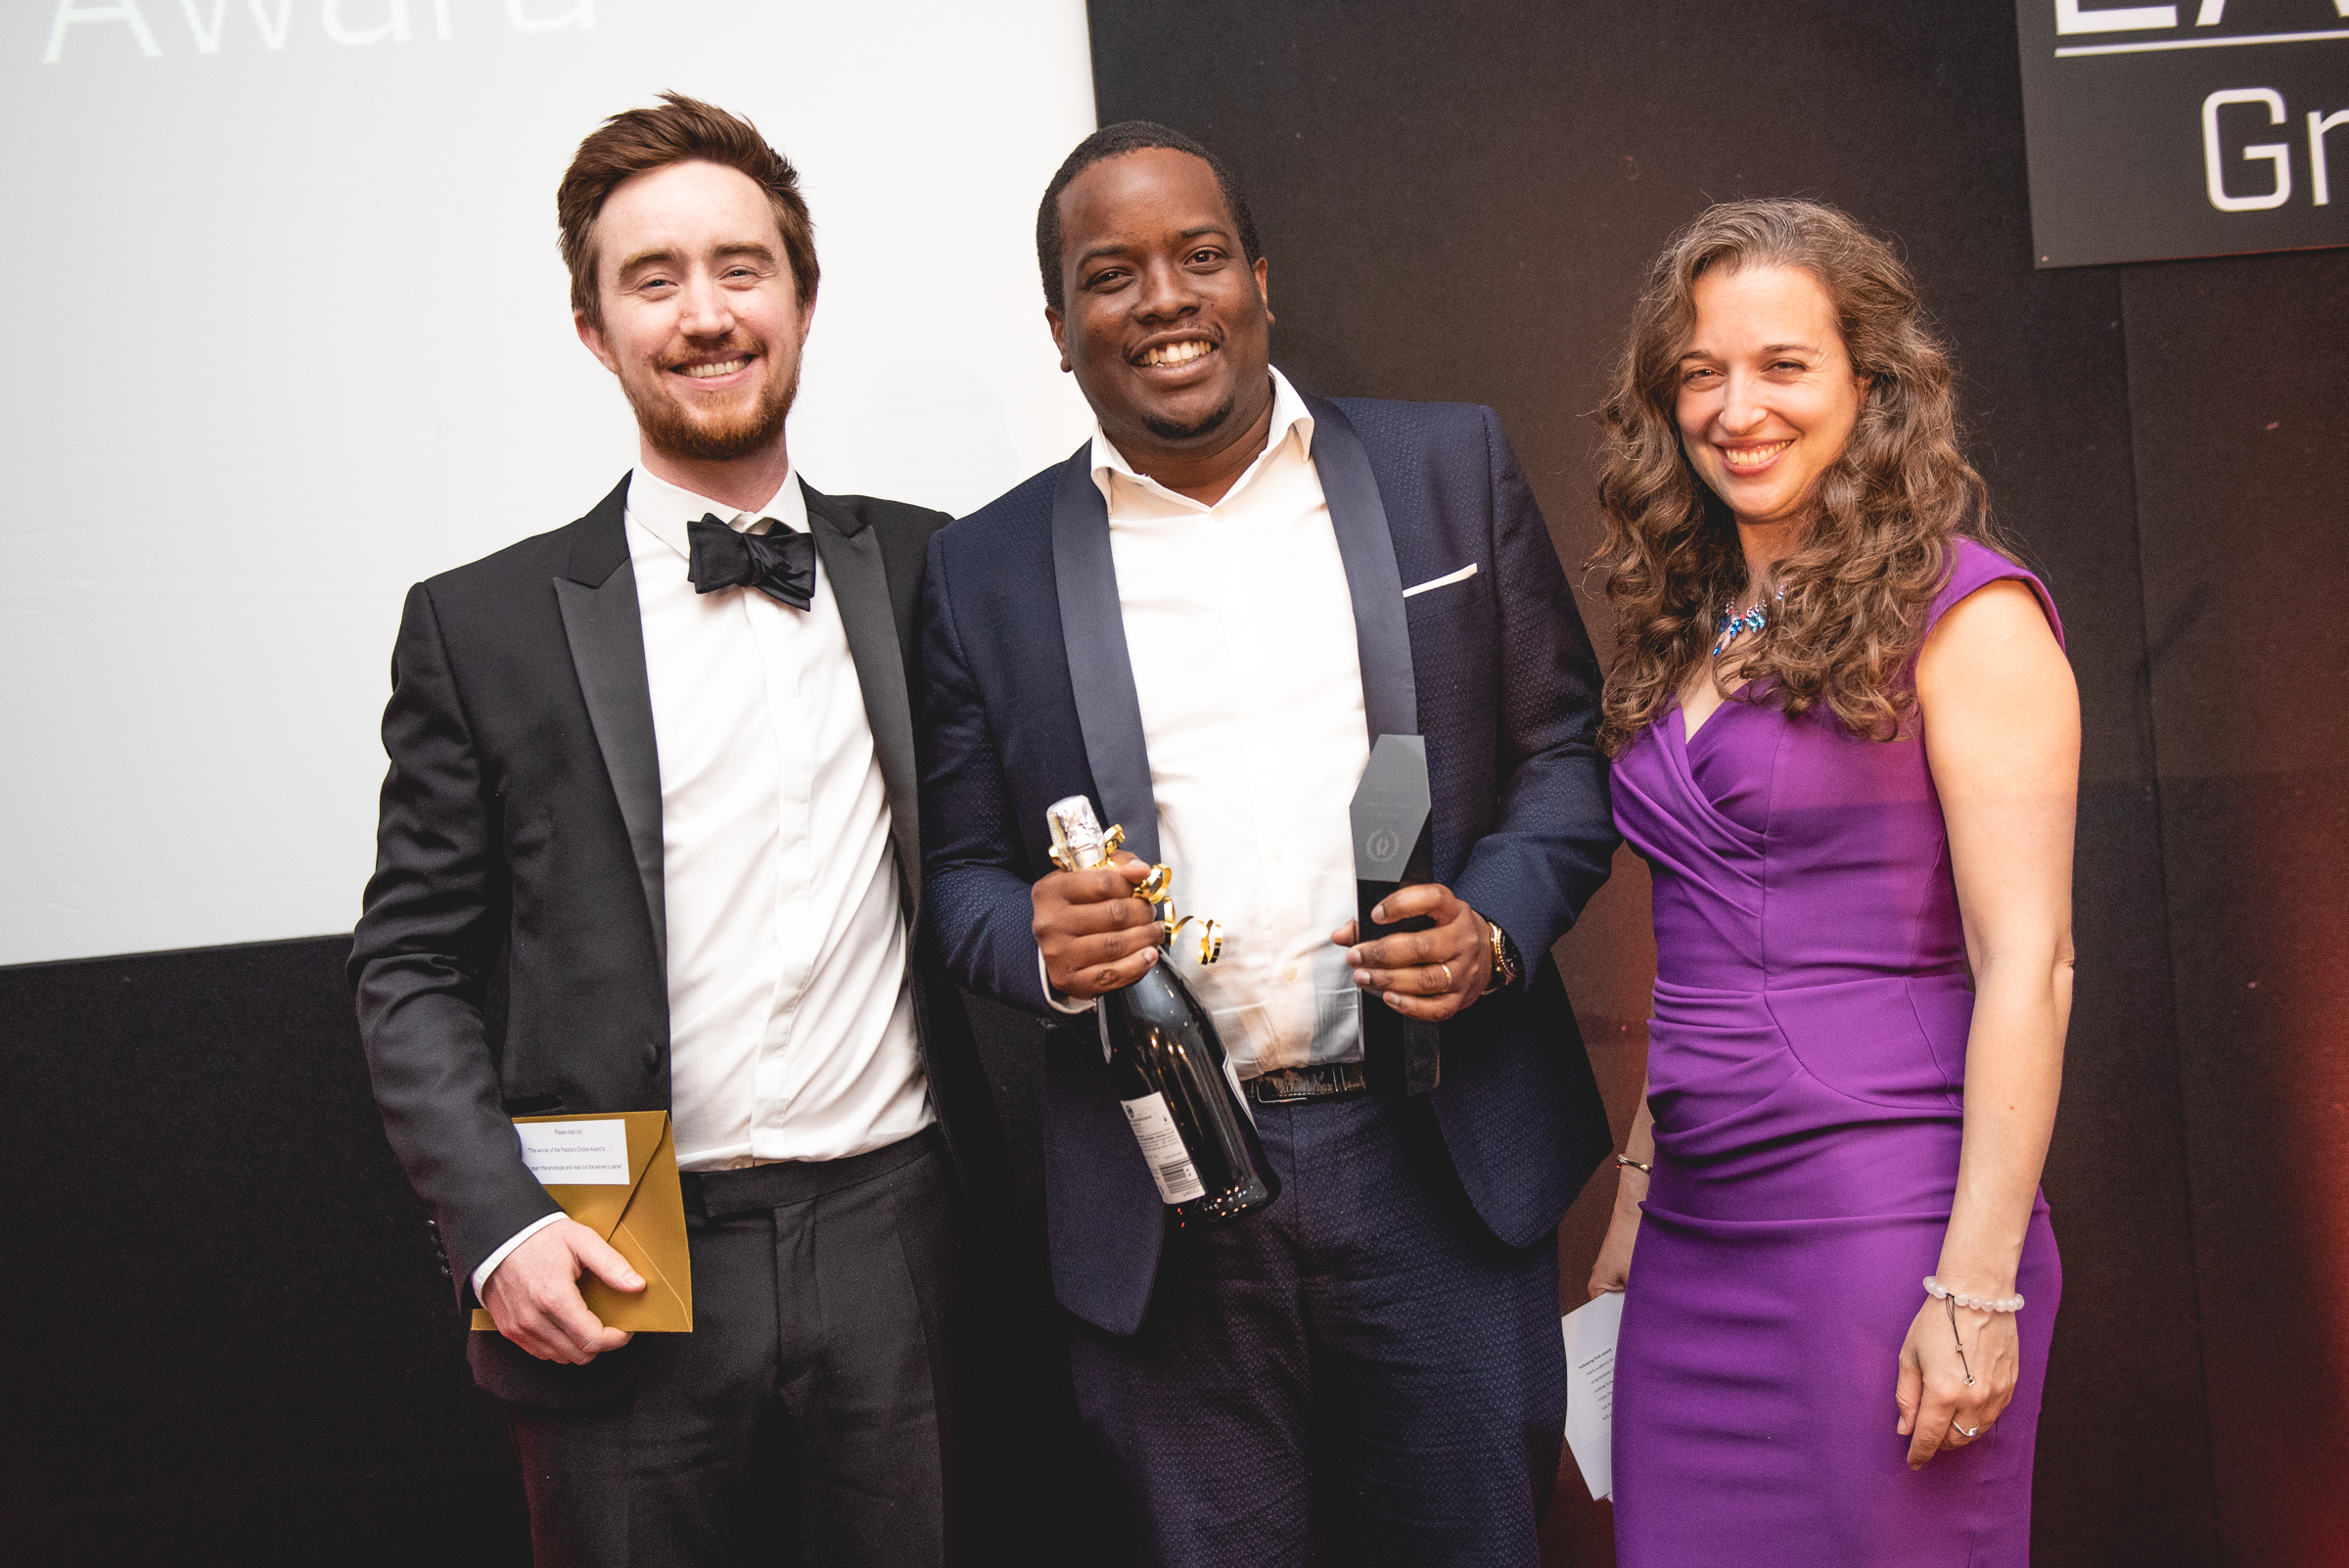 FluoretiQ, winner of the People's Choice Award sponsored by Future Space  L to R: Marty Reid, Dr Neciah Dorh, Dr Emily Grossman